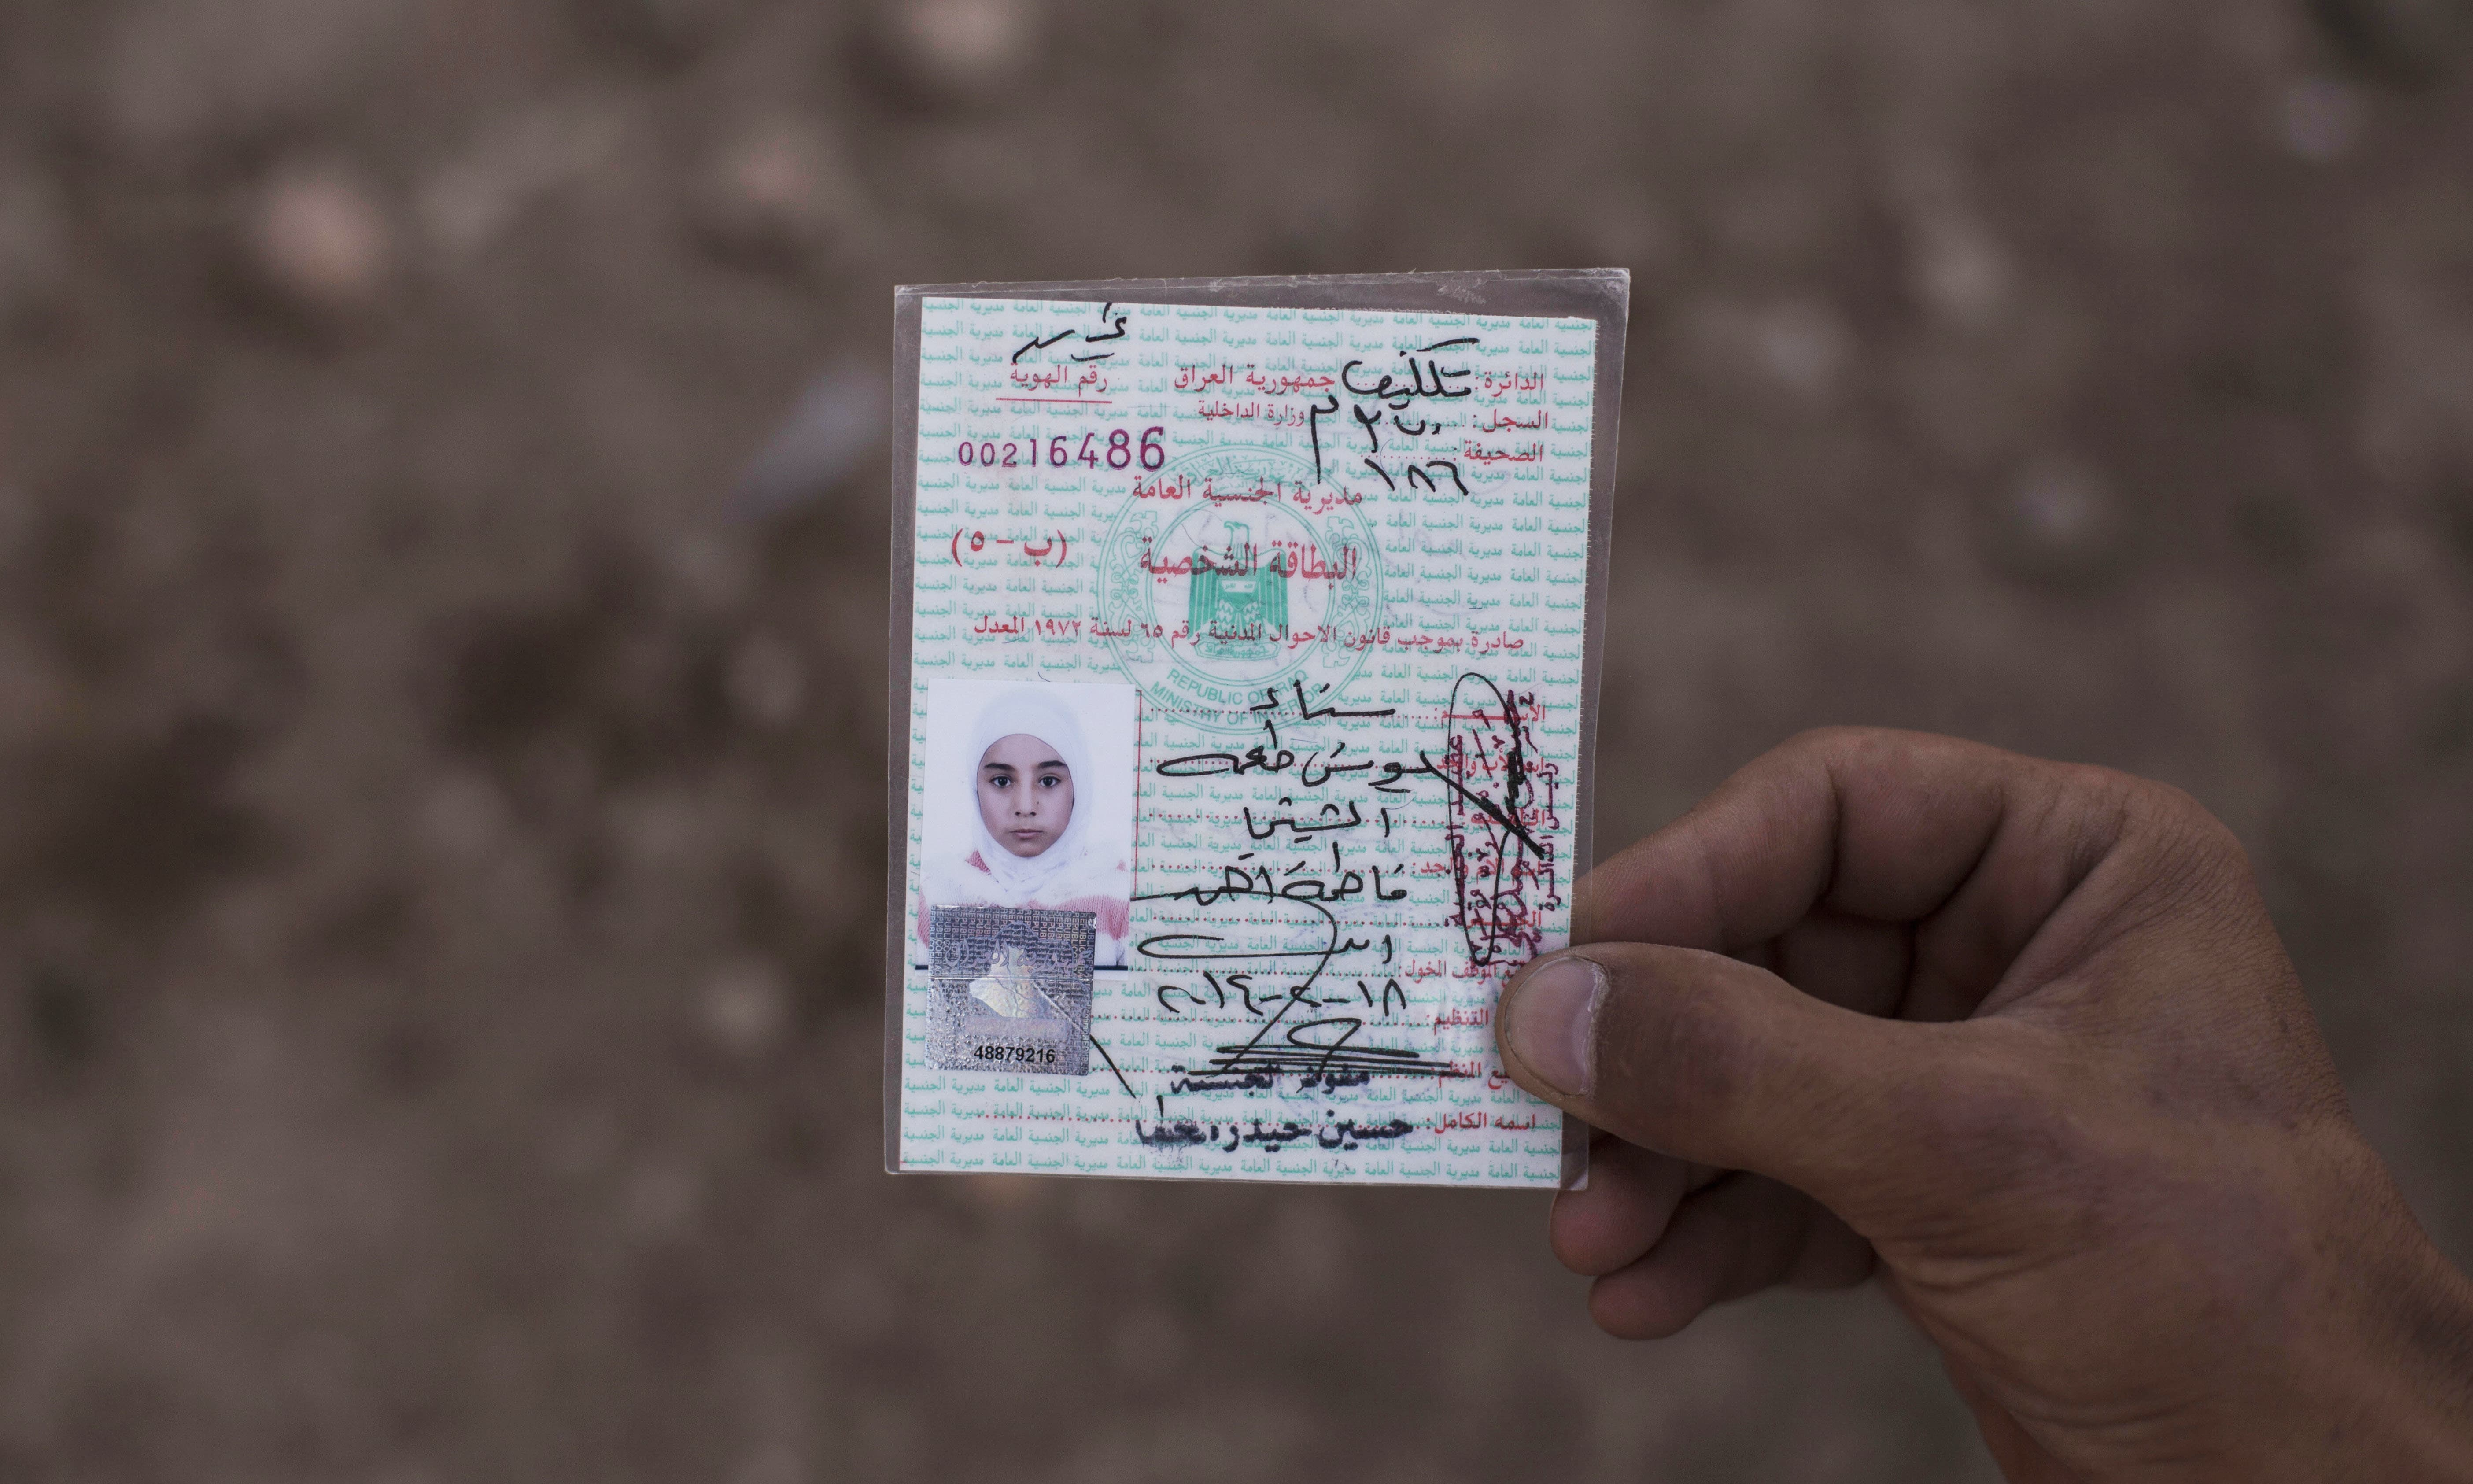 15-year-old Sana Younes died in a mortar attack in Mosul during the final battle to drive out Islamic State extremists, and her body was exhumed months later for forensic investigation. In this photo, her brother Salem holds her identification card before her remains are reburied. —AP